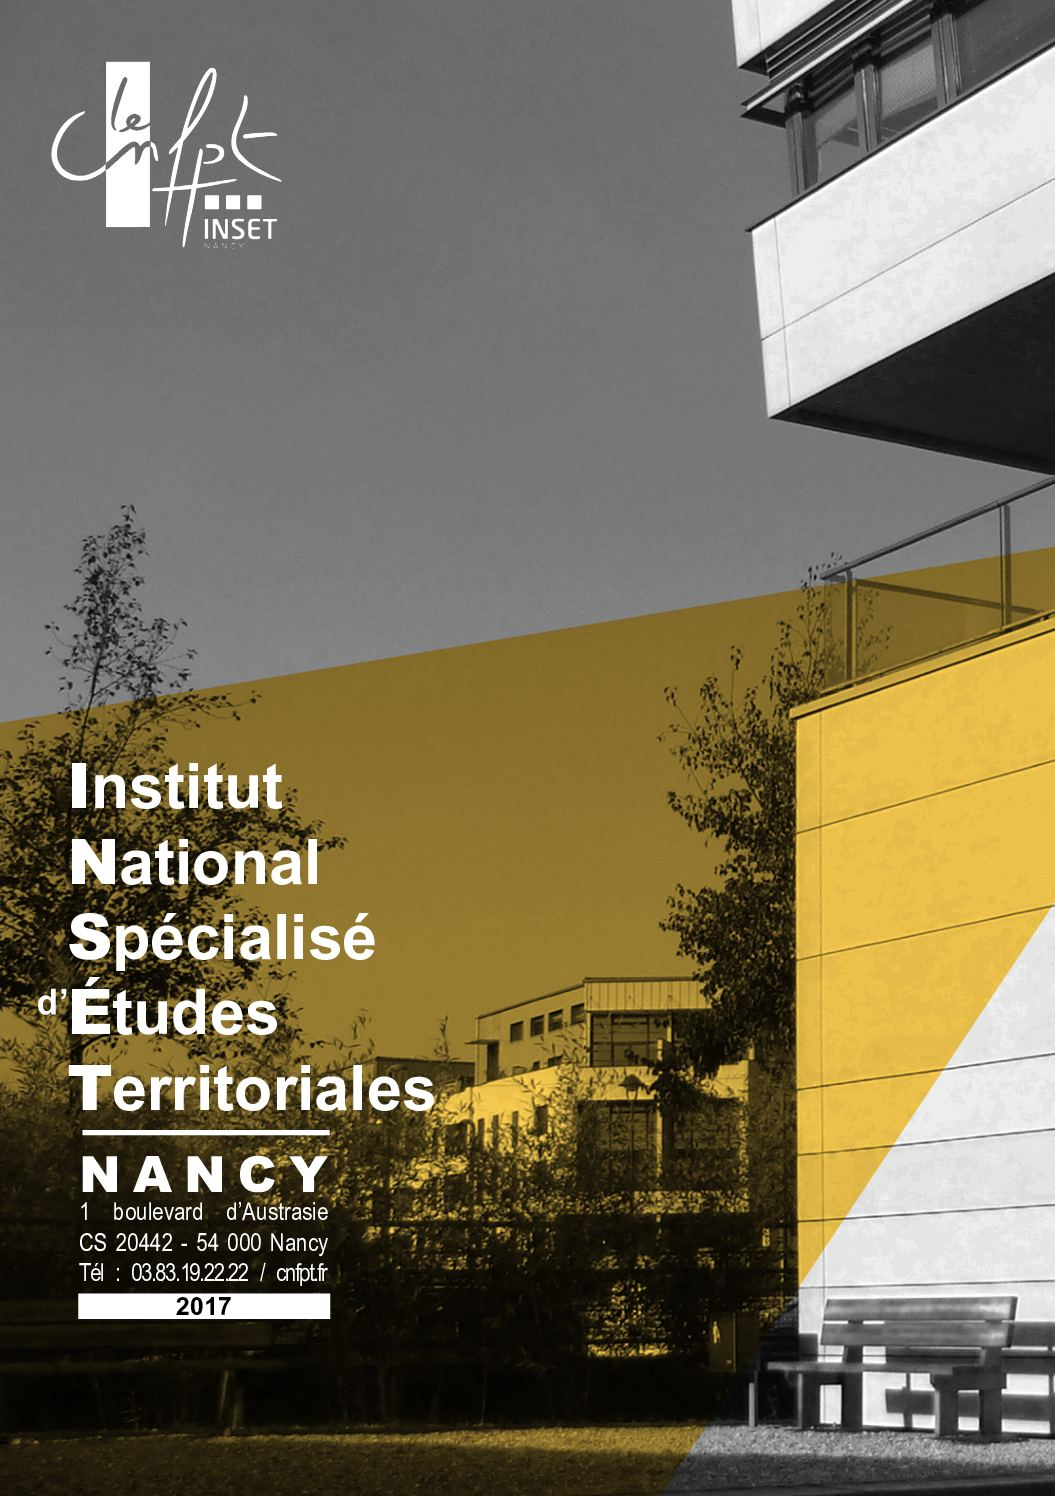 rencontres territoriales cnfpt angers